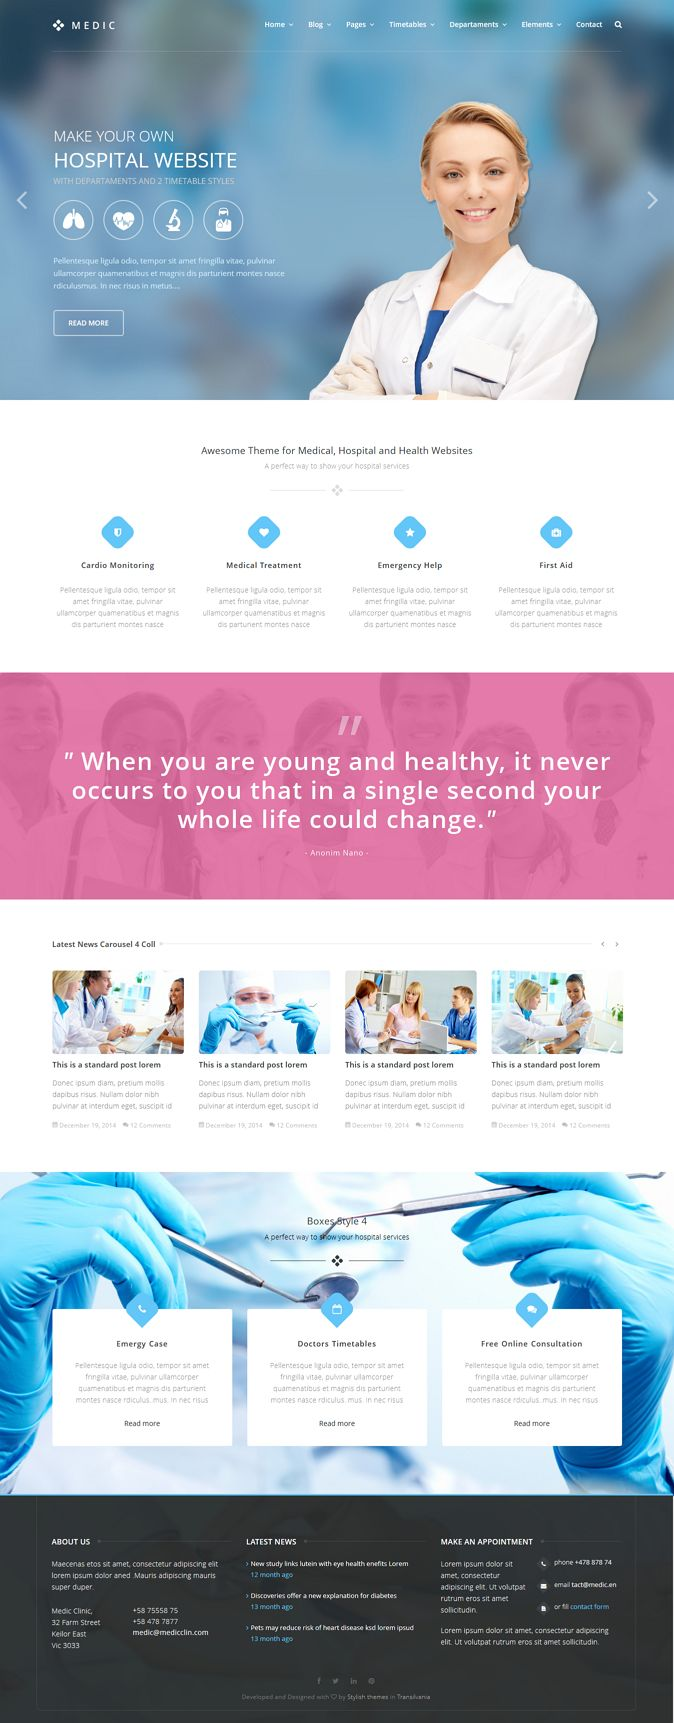 Medic is an HTML template that will help you to make a Medical, Health or Hospital website. In this pack of 57 HTML you will find 2 styles...